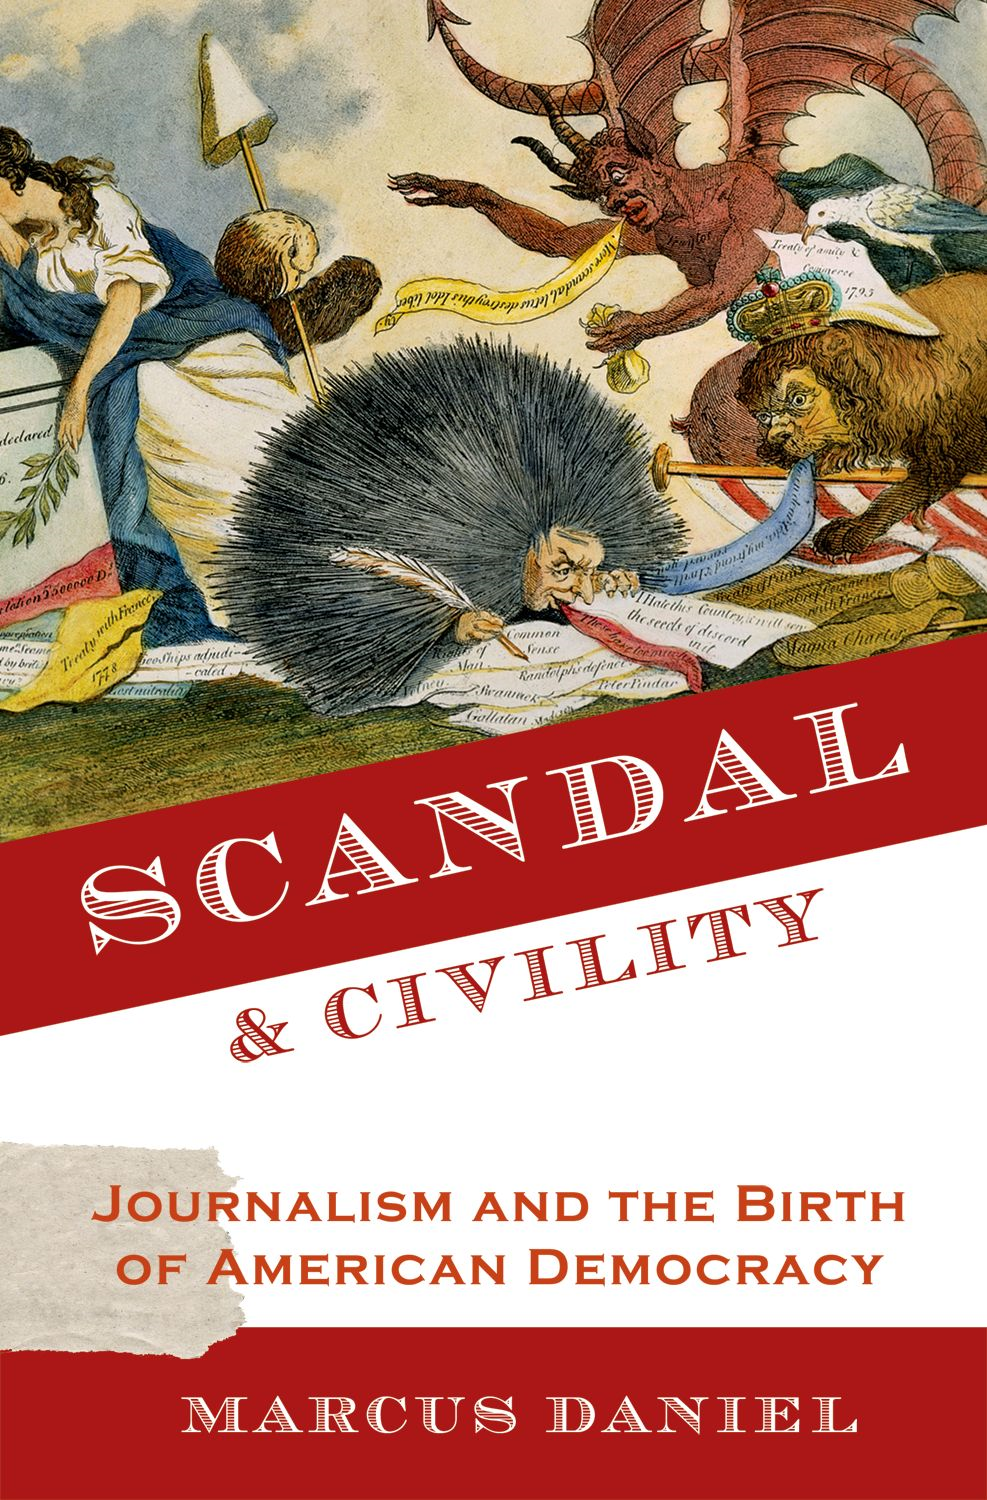 Scandal and Civility: Journalism and the Birth of American Democracy